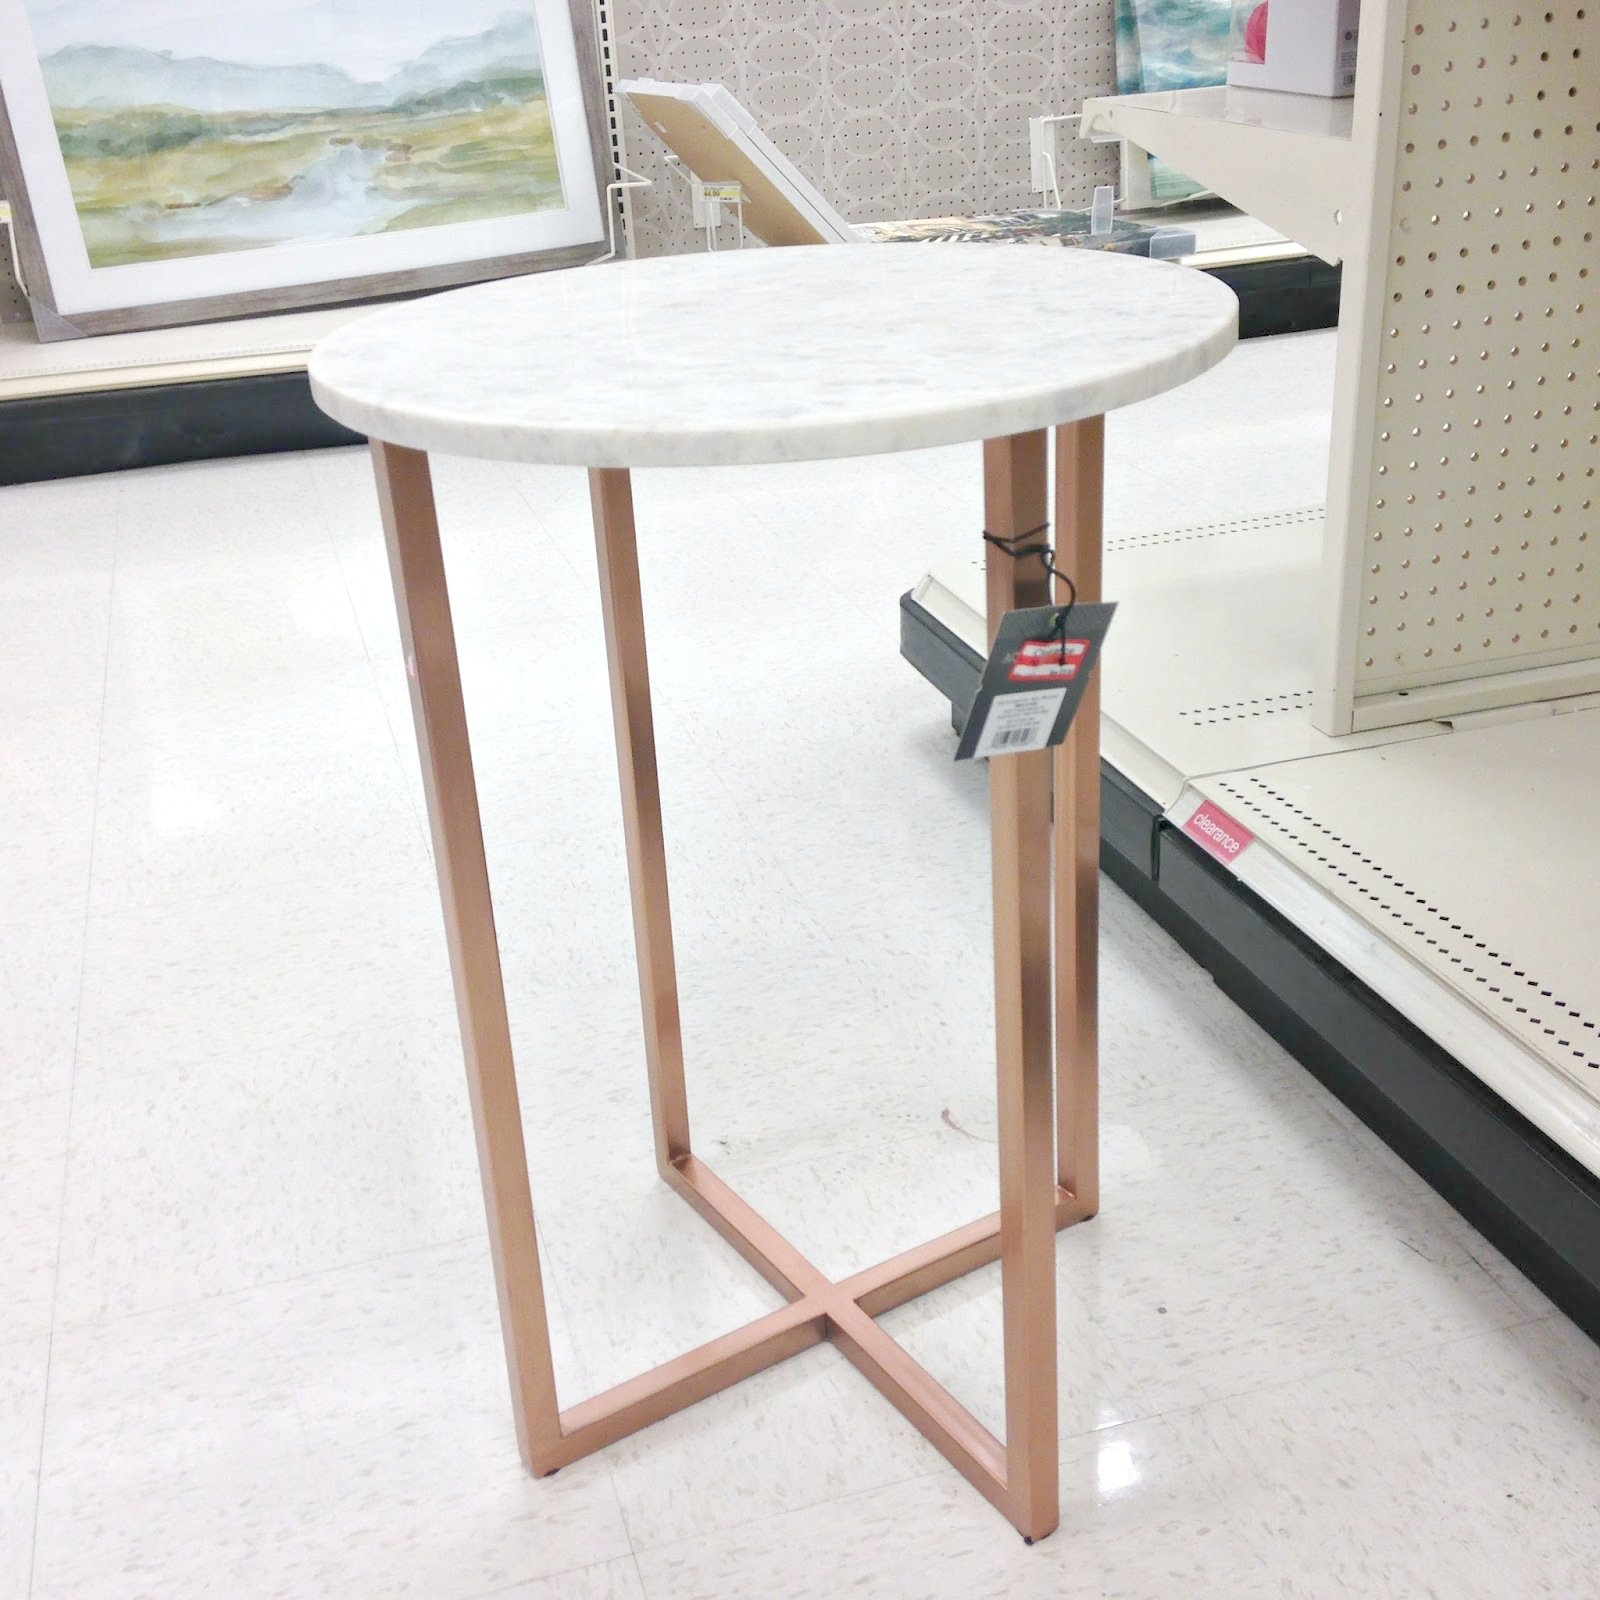 gold end table target modern coffee tables and accent exceptional rose marble off was this side great already knock popular trending styles for the season mersman pier one dining